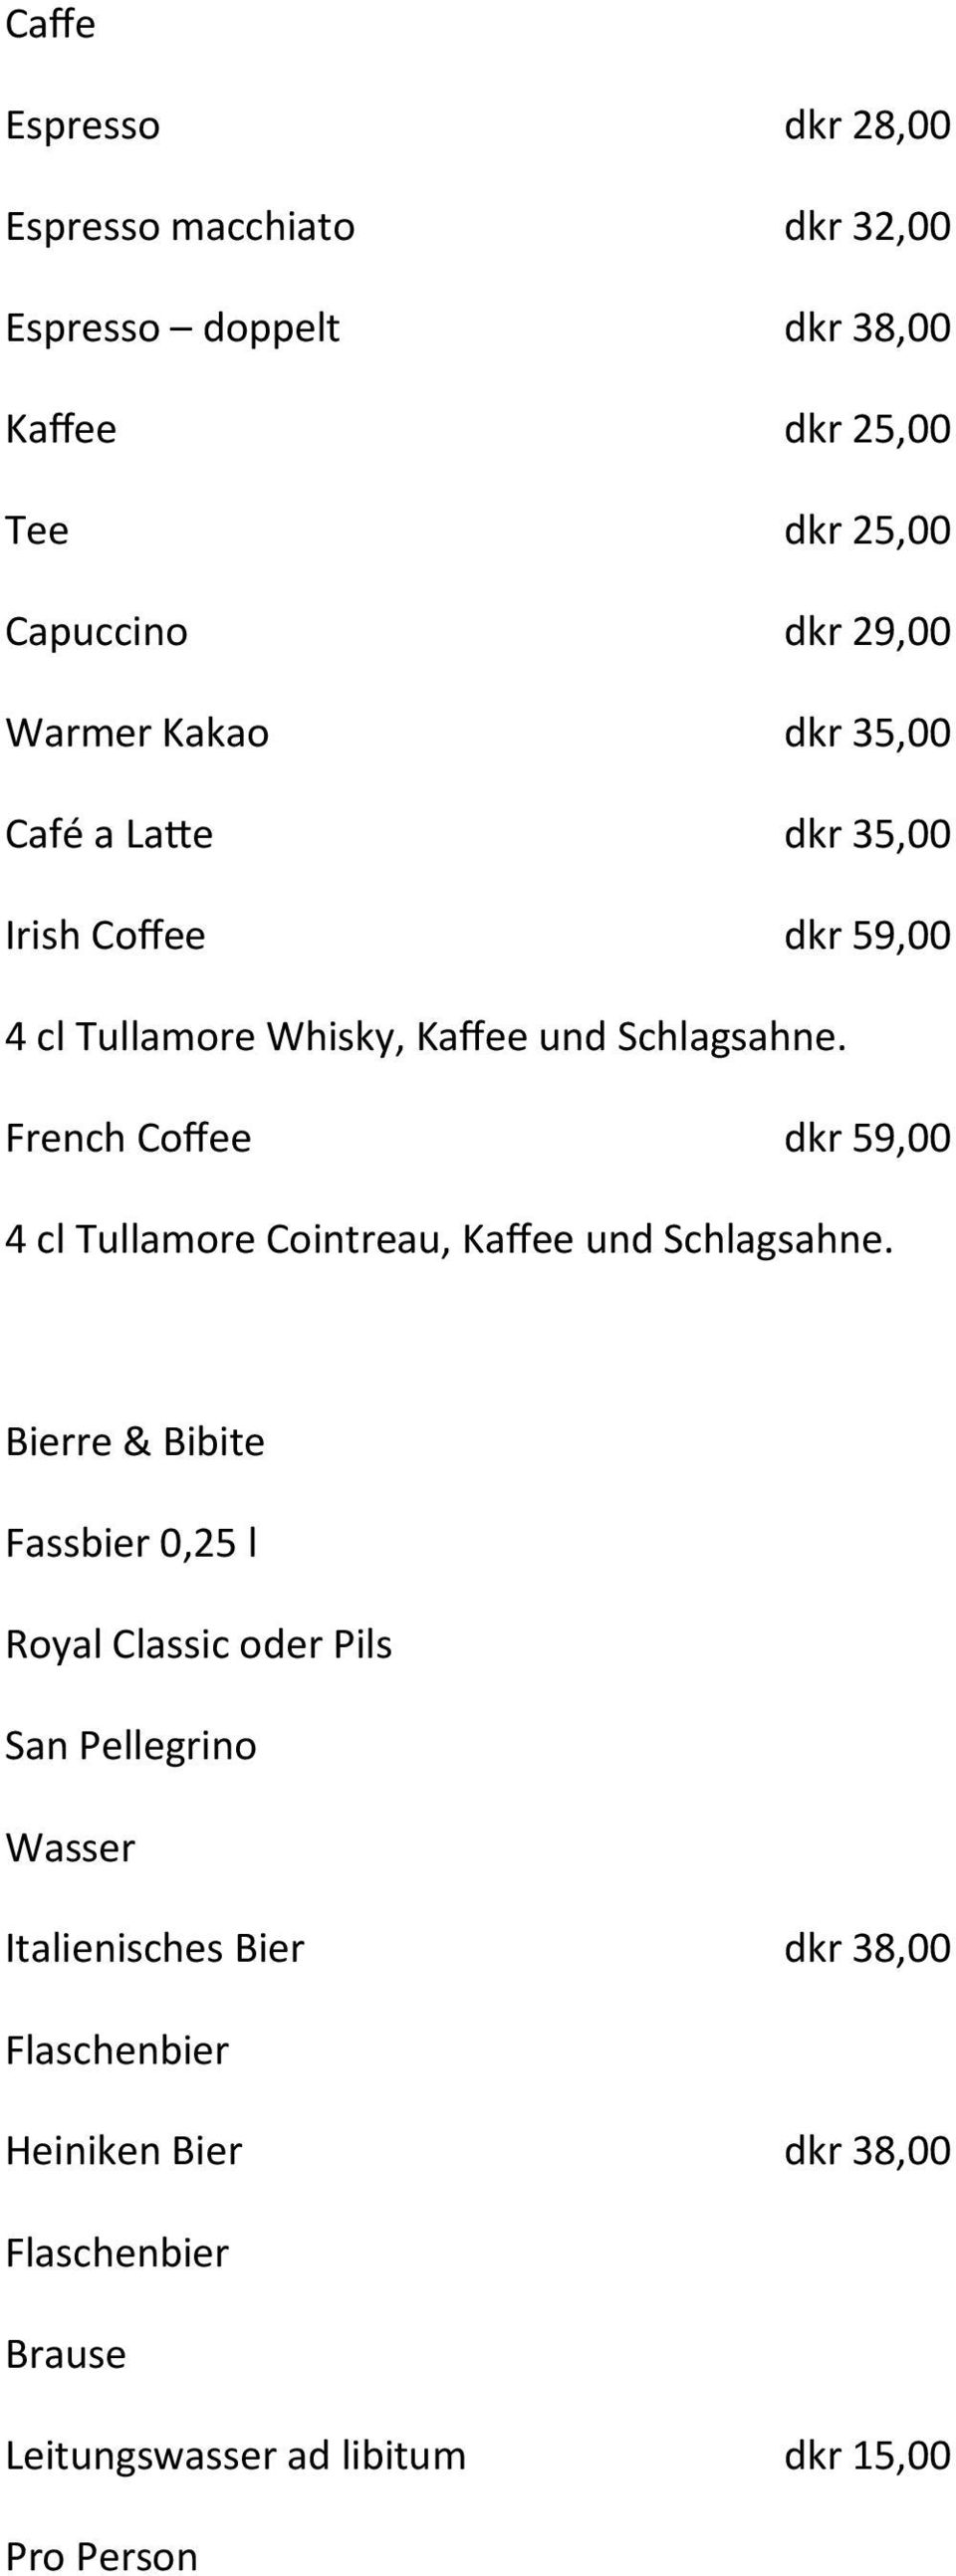 French Coffee dkr 59,00 4 cl Tullamore Cointreau, Kaffee und Schlagsahne.